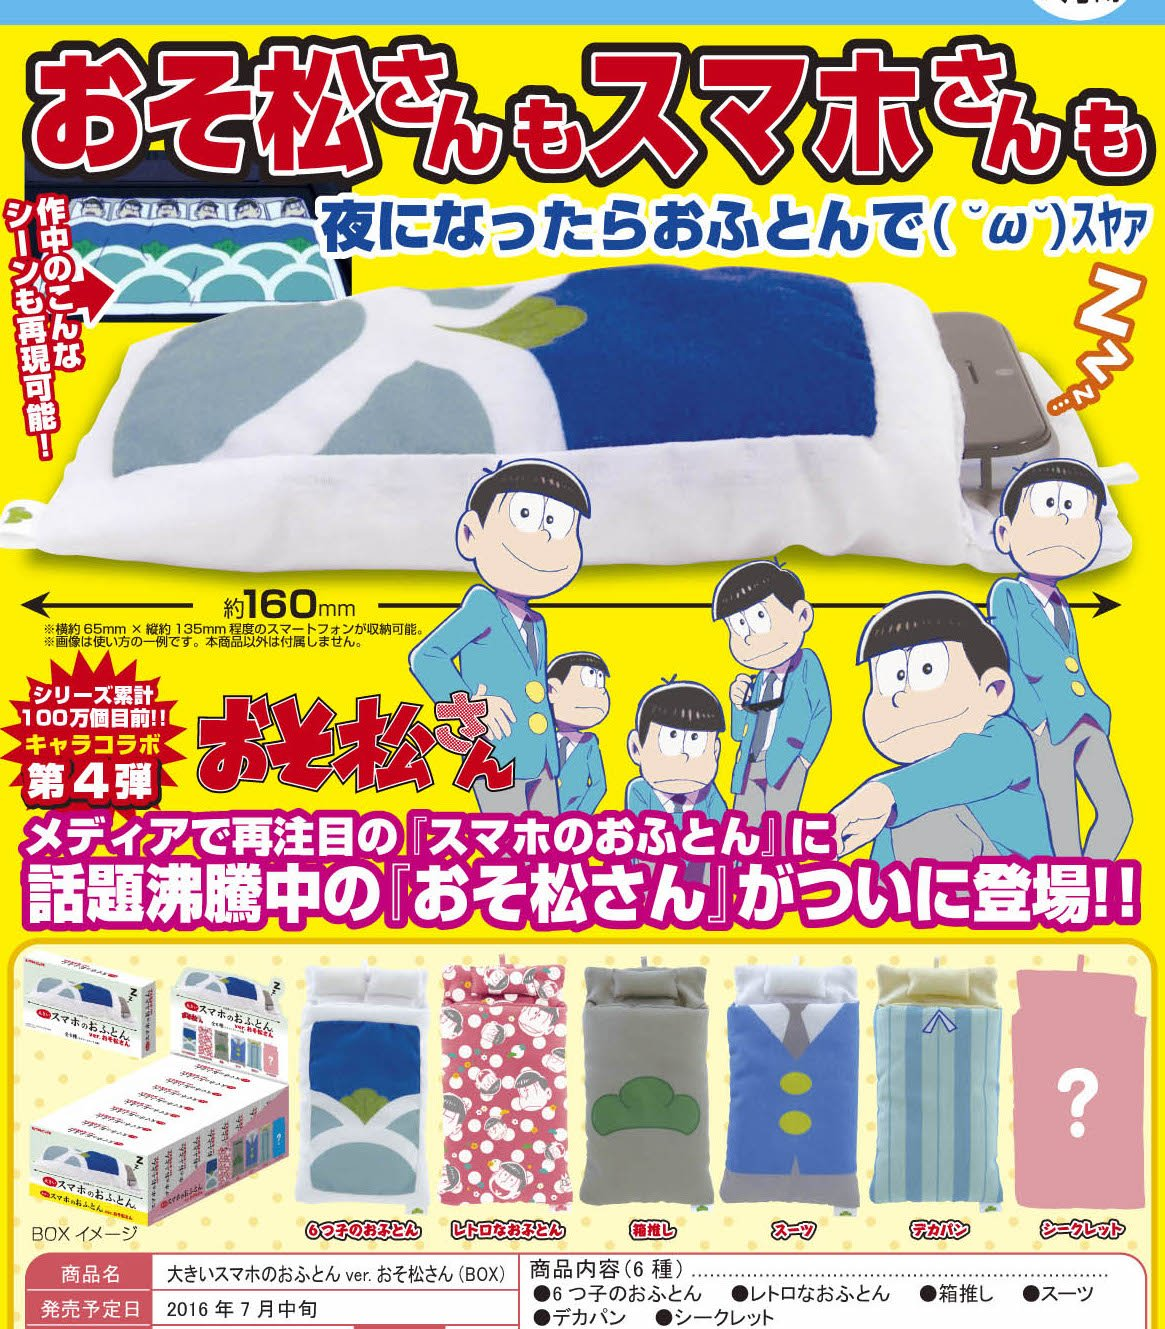 Great Smartphone futon ver. probably pine's BOX product 1 = 12 pieces with, all six (out of secret)